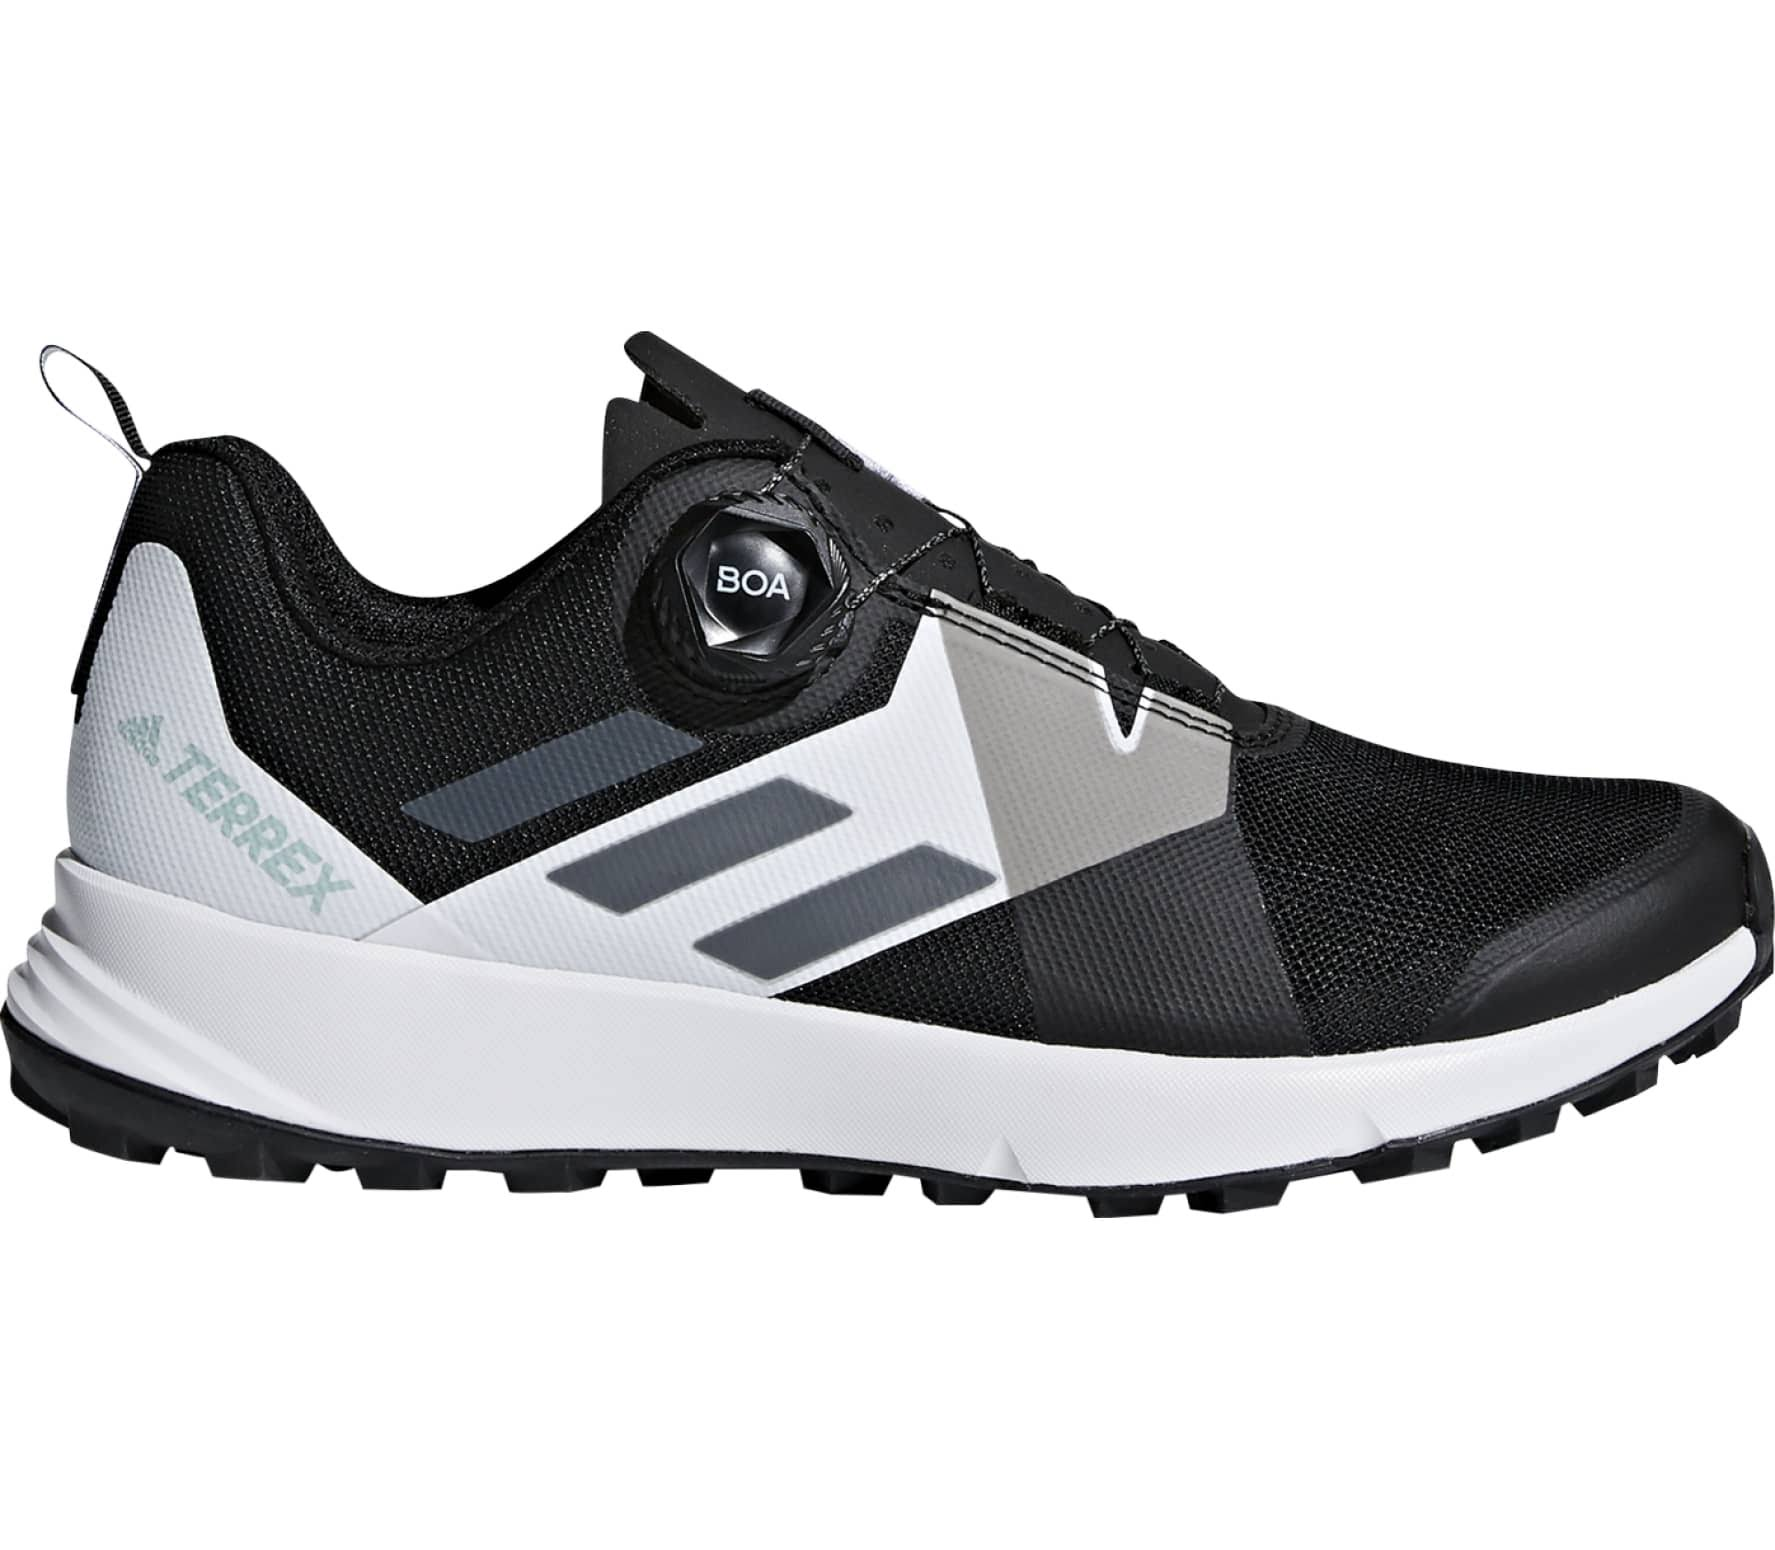 Adidas Terrex Two Boa Women's Trail Running Shoes - Black - 6.5